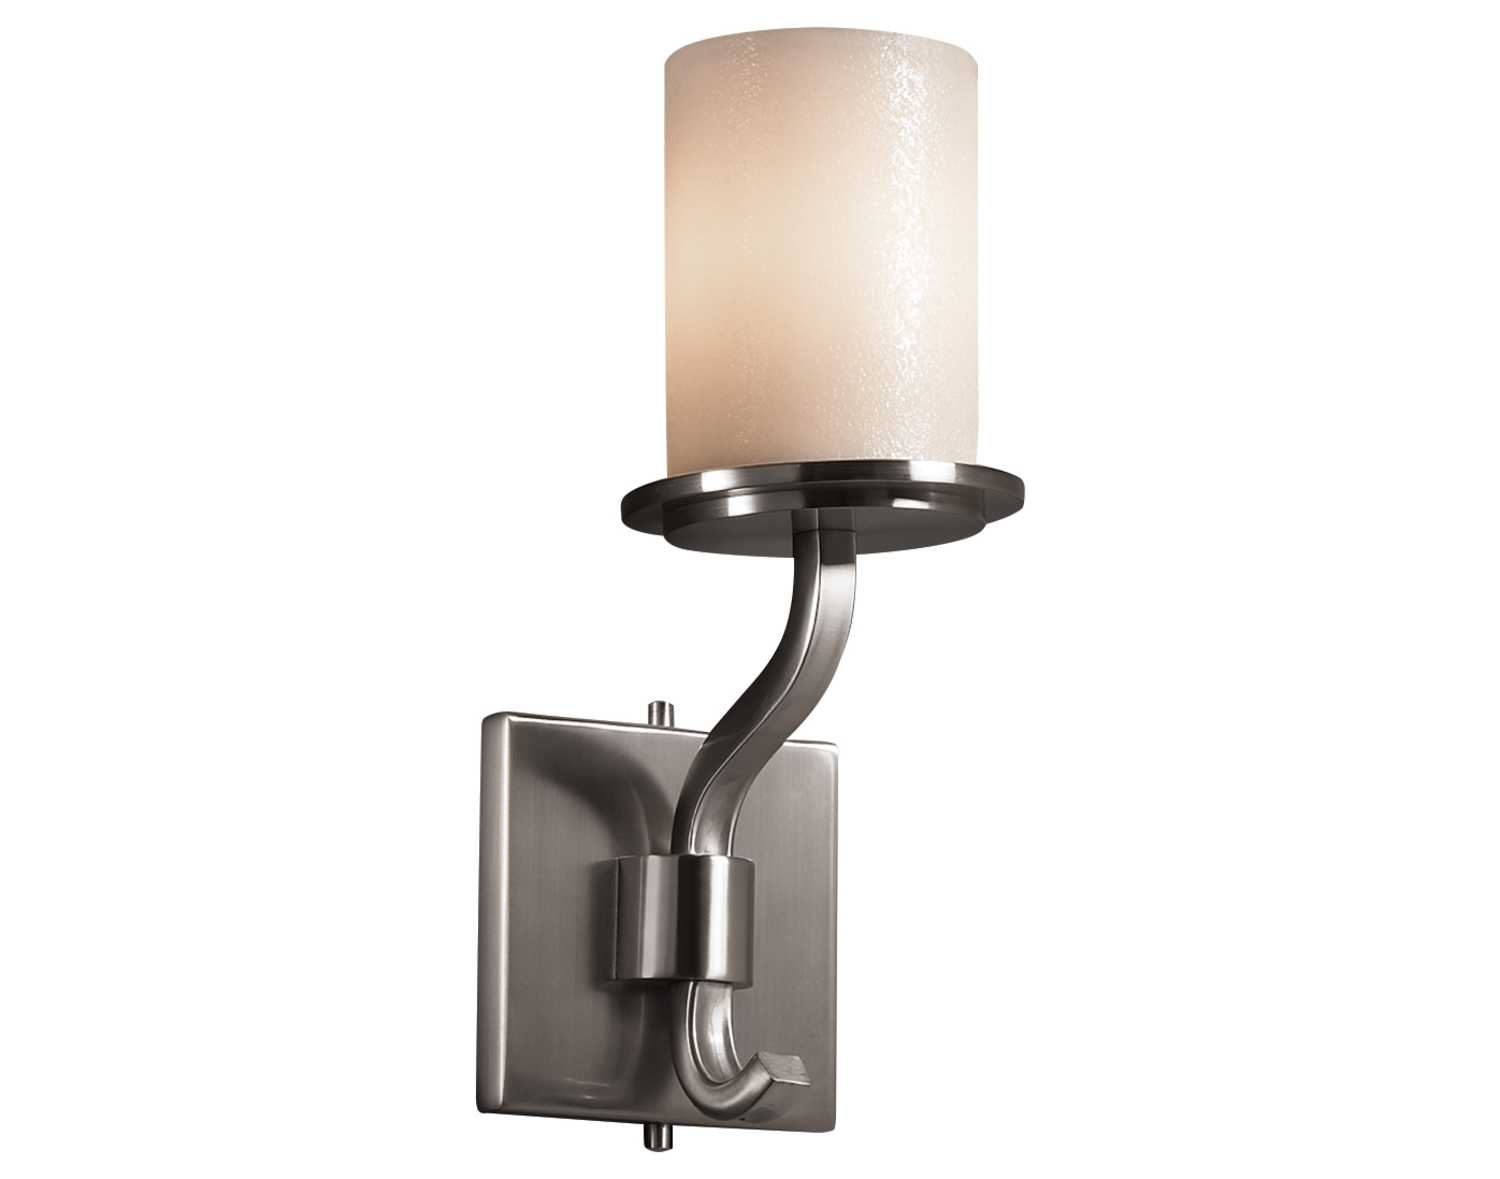 Fake Candle Wall Lights : Justice Design Group Candlearia Sonoma Short Faux Candle Resin Wall Sconce CNDL-8781